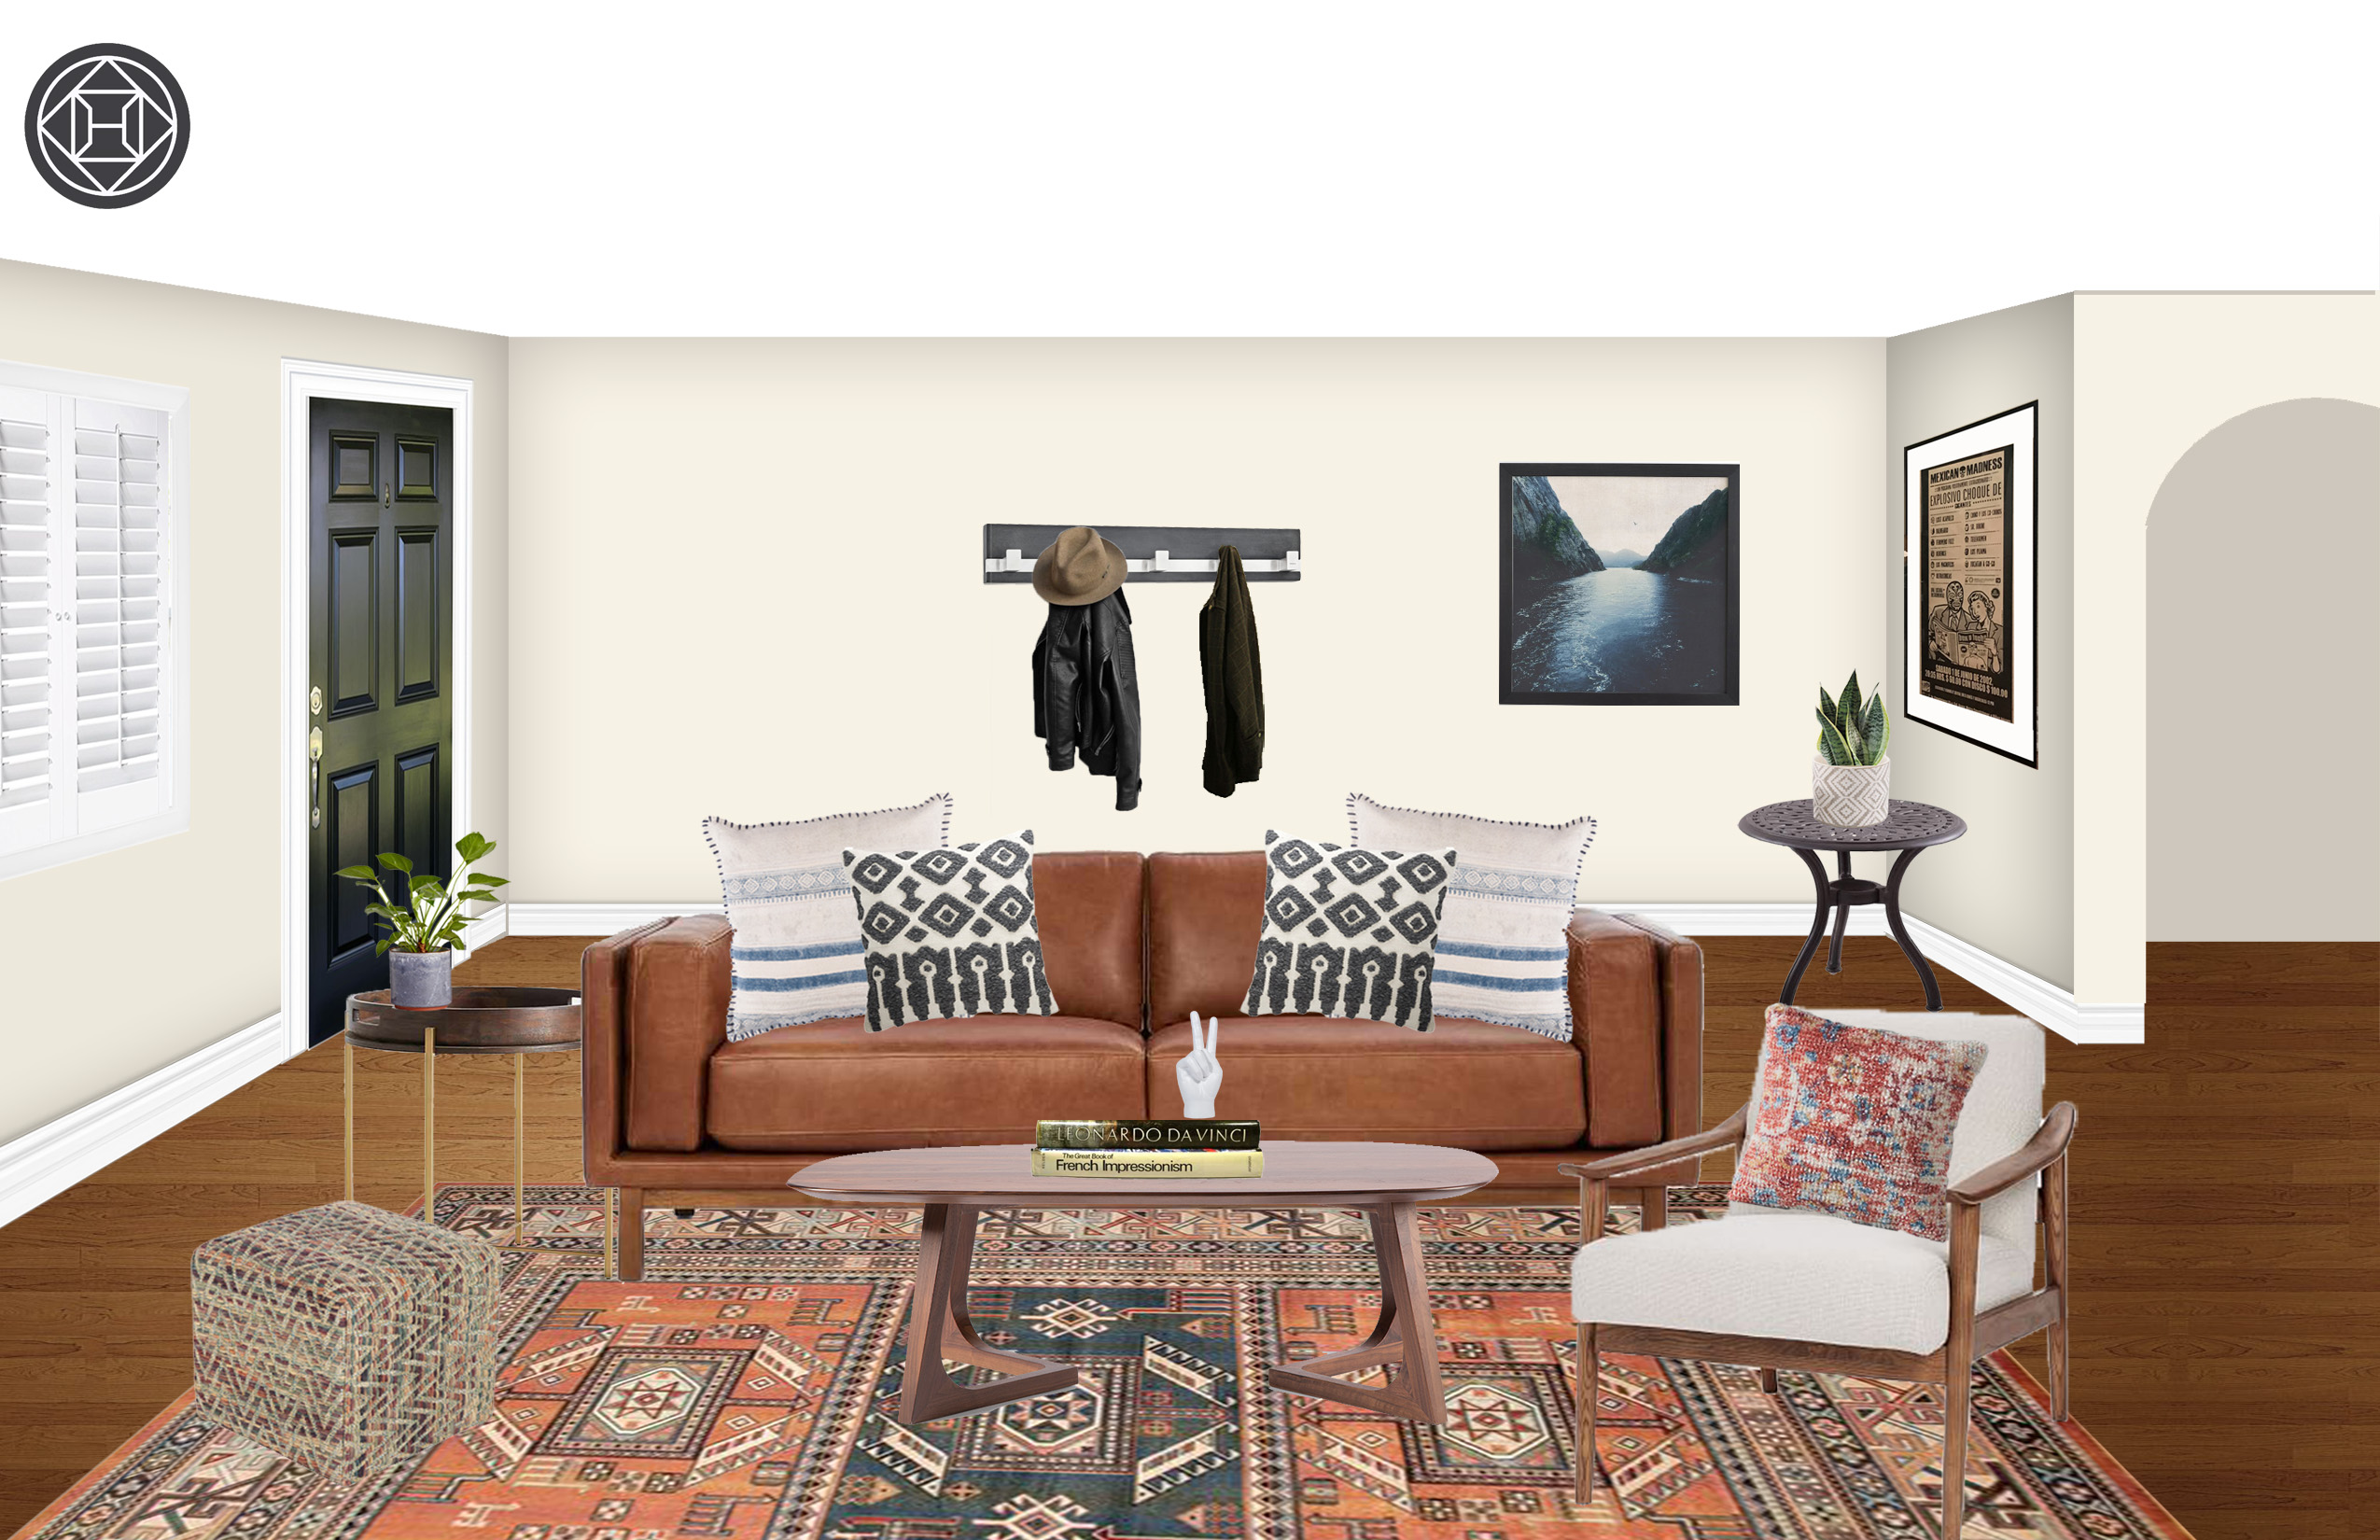 Eclectic Bohemian Midcentury Modern Living Room Design by Havenly